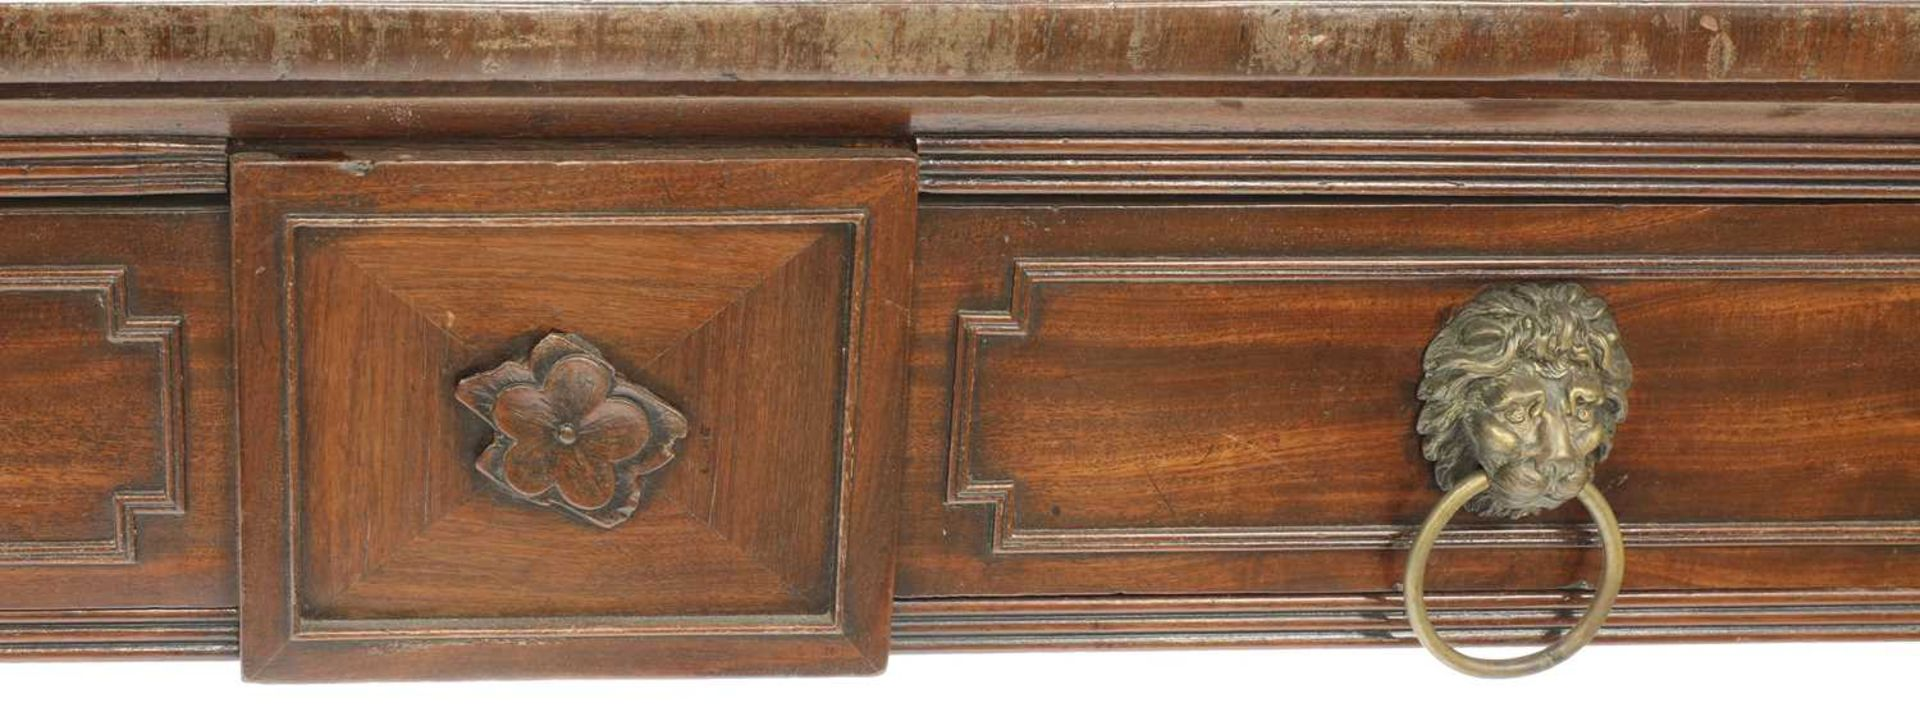 A Regency mahogany breakfront sideboard, - Image 6 of 7